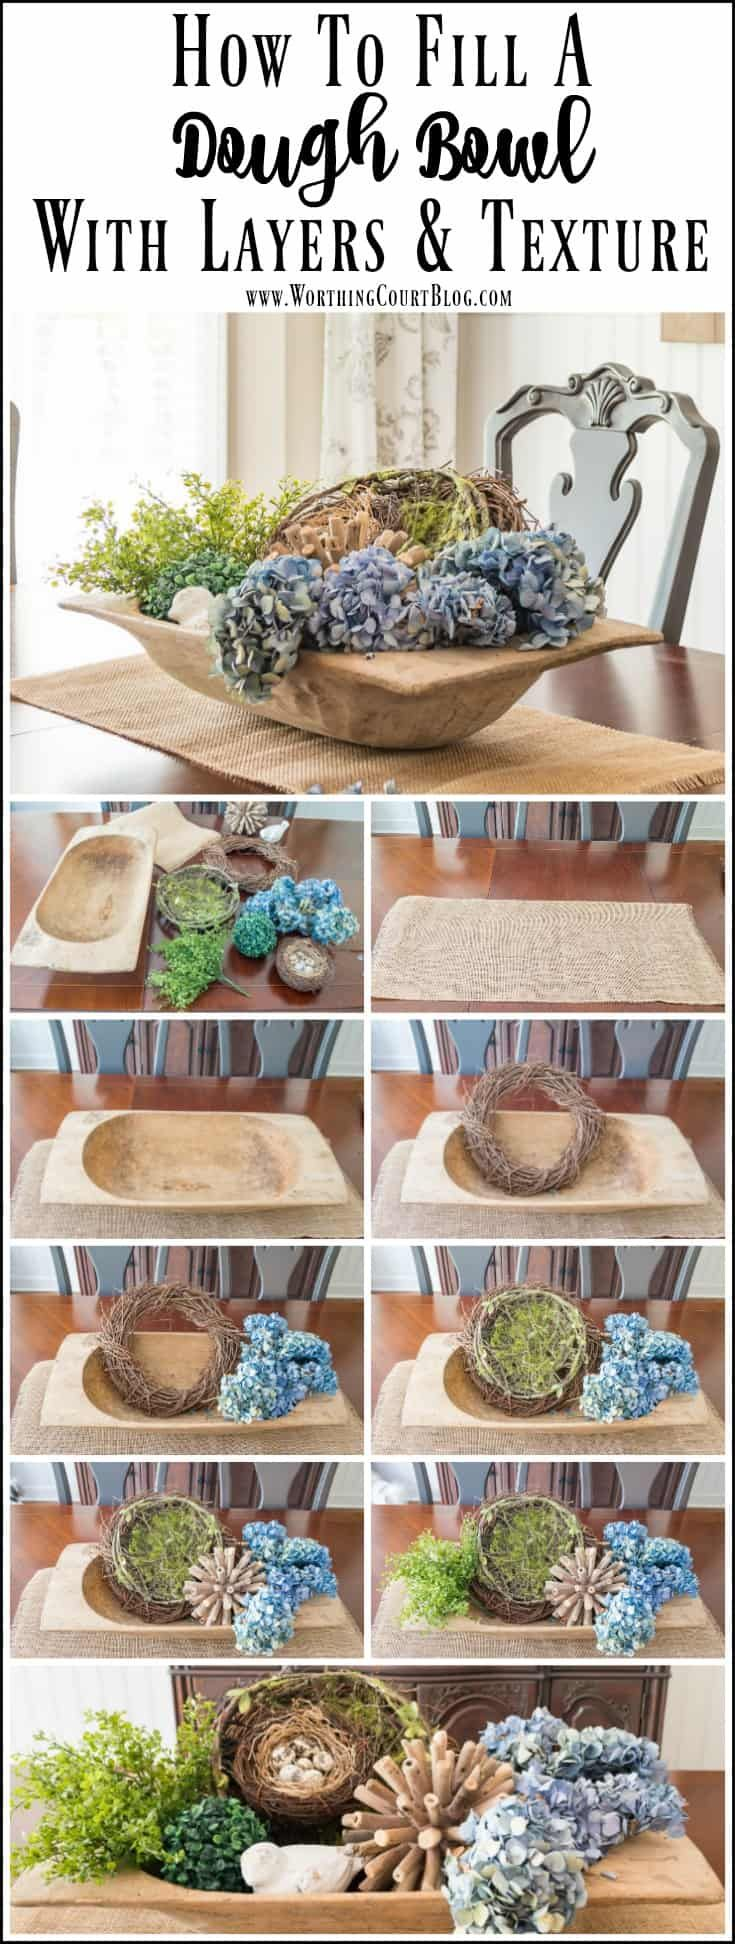 Step By Step Directions For Filling A Dough Bowl